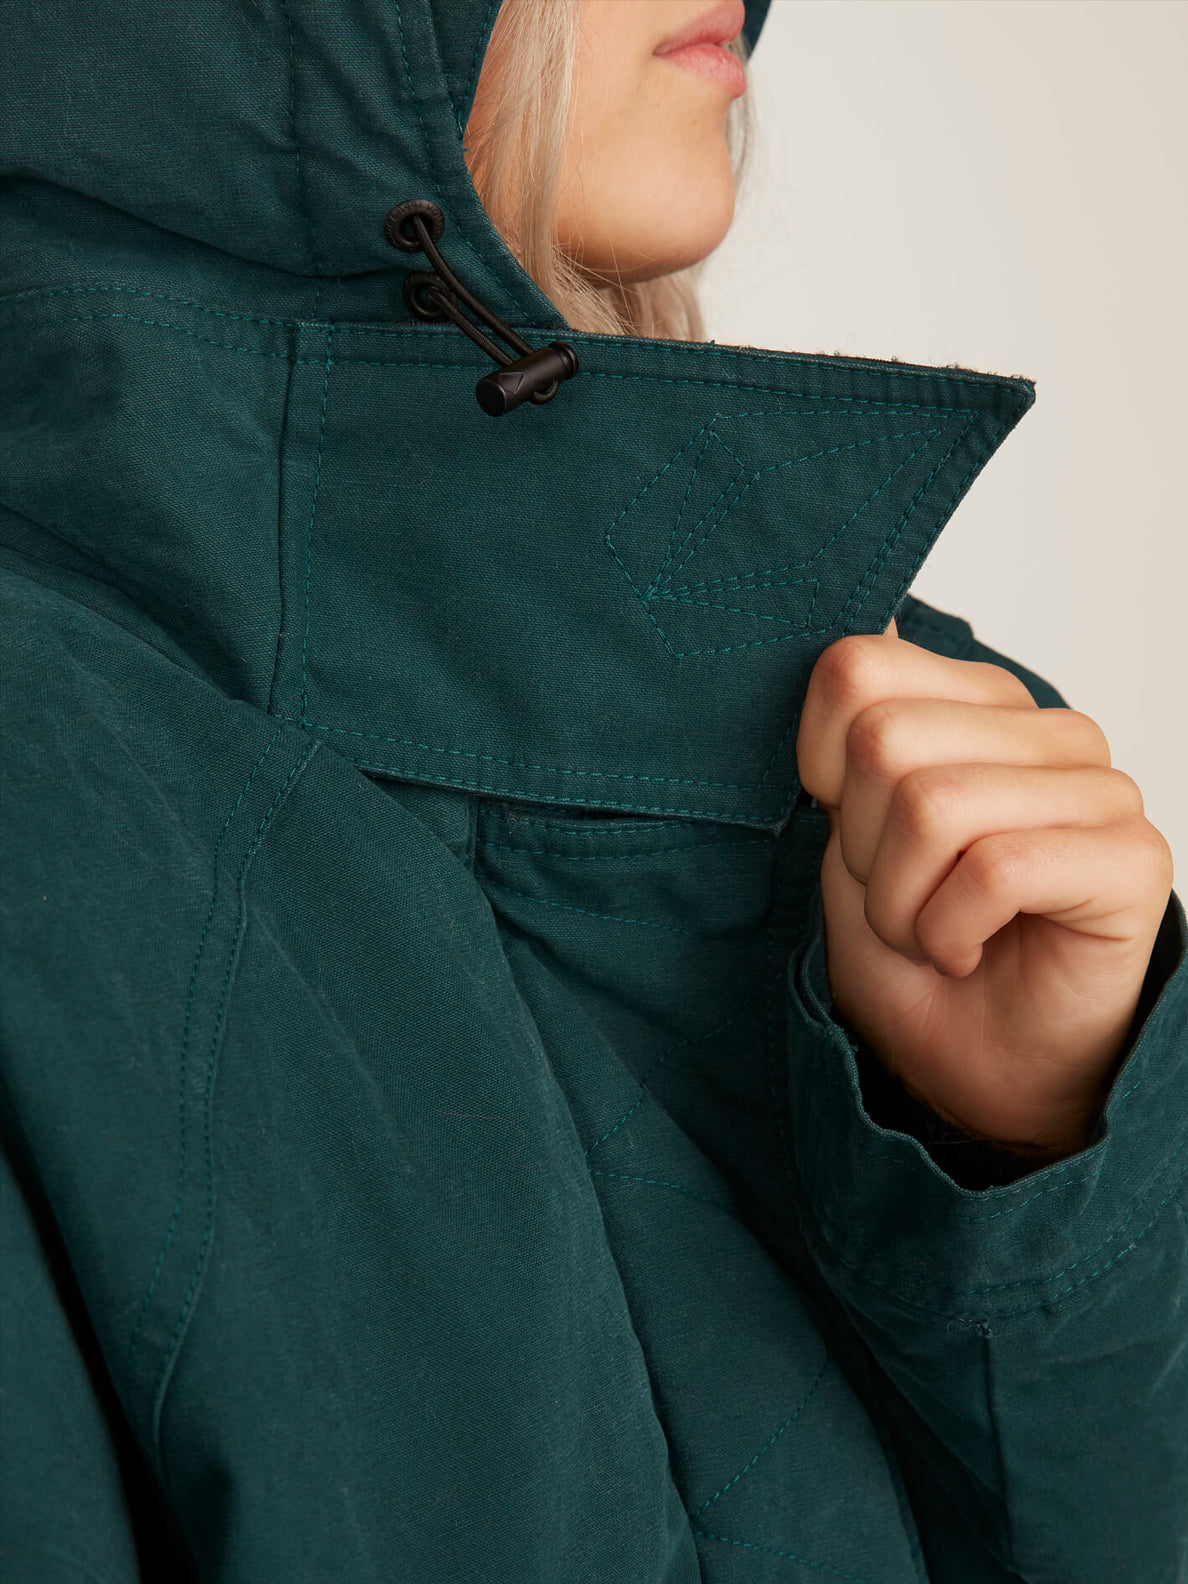 Volcover Parka In Evergreen, Fourth Alternate View